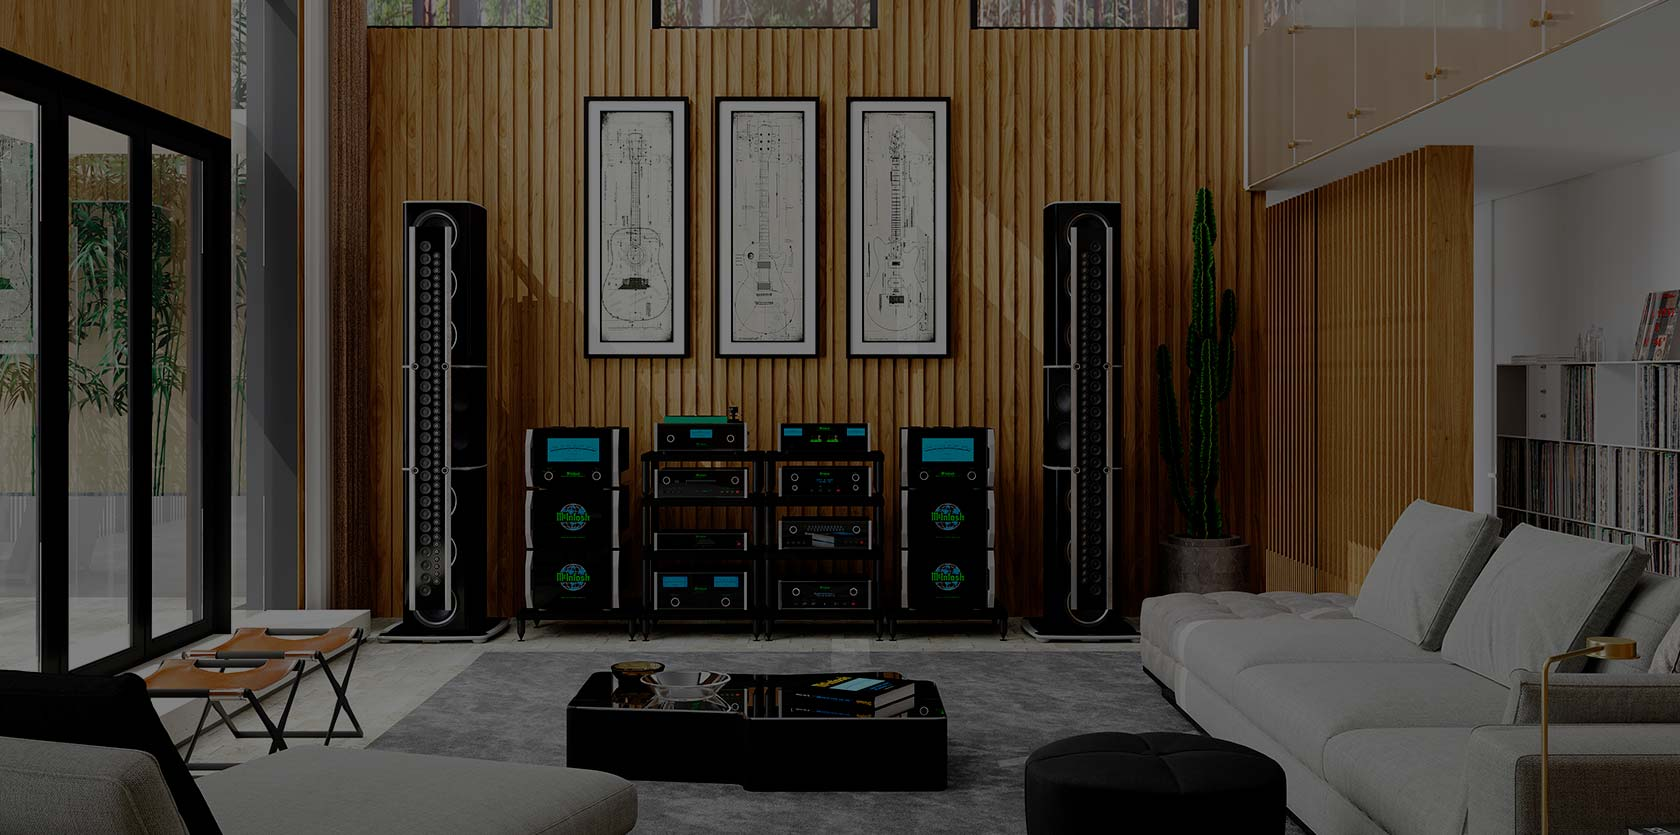 McIntosh Reference Music System